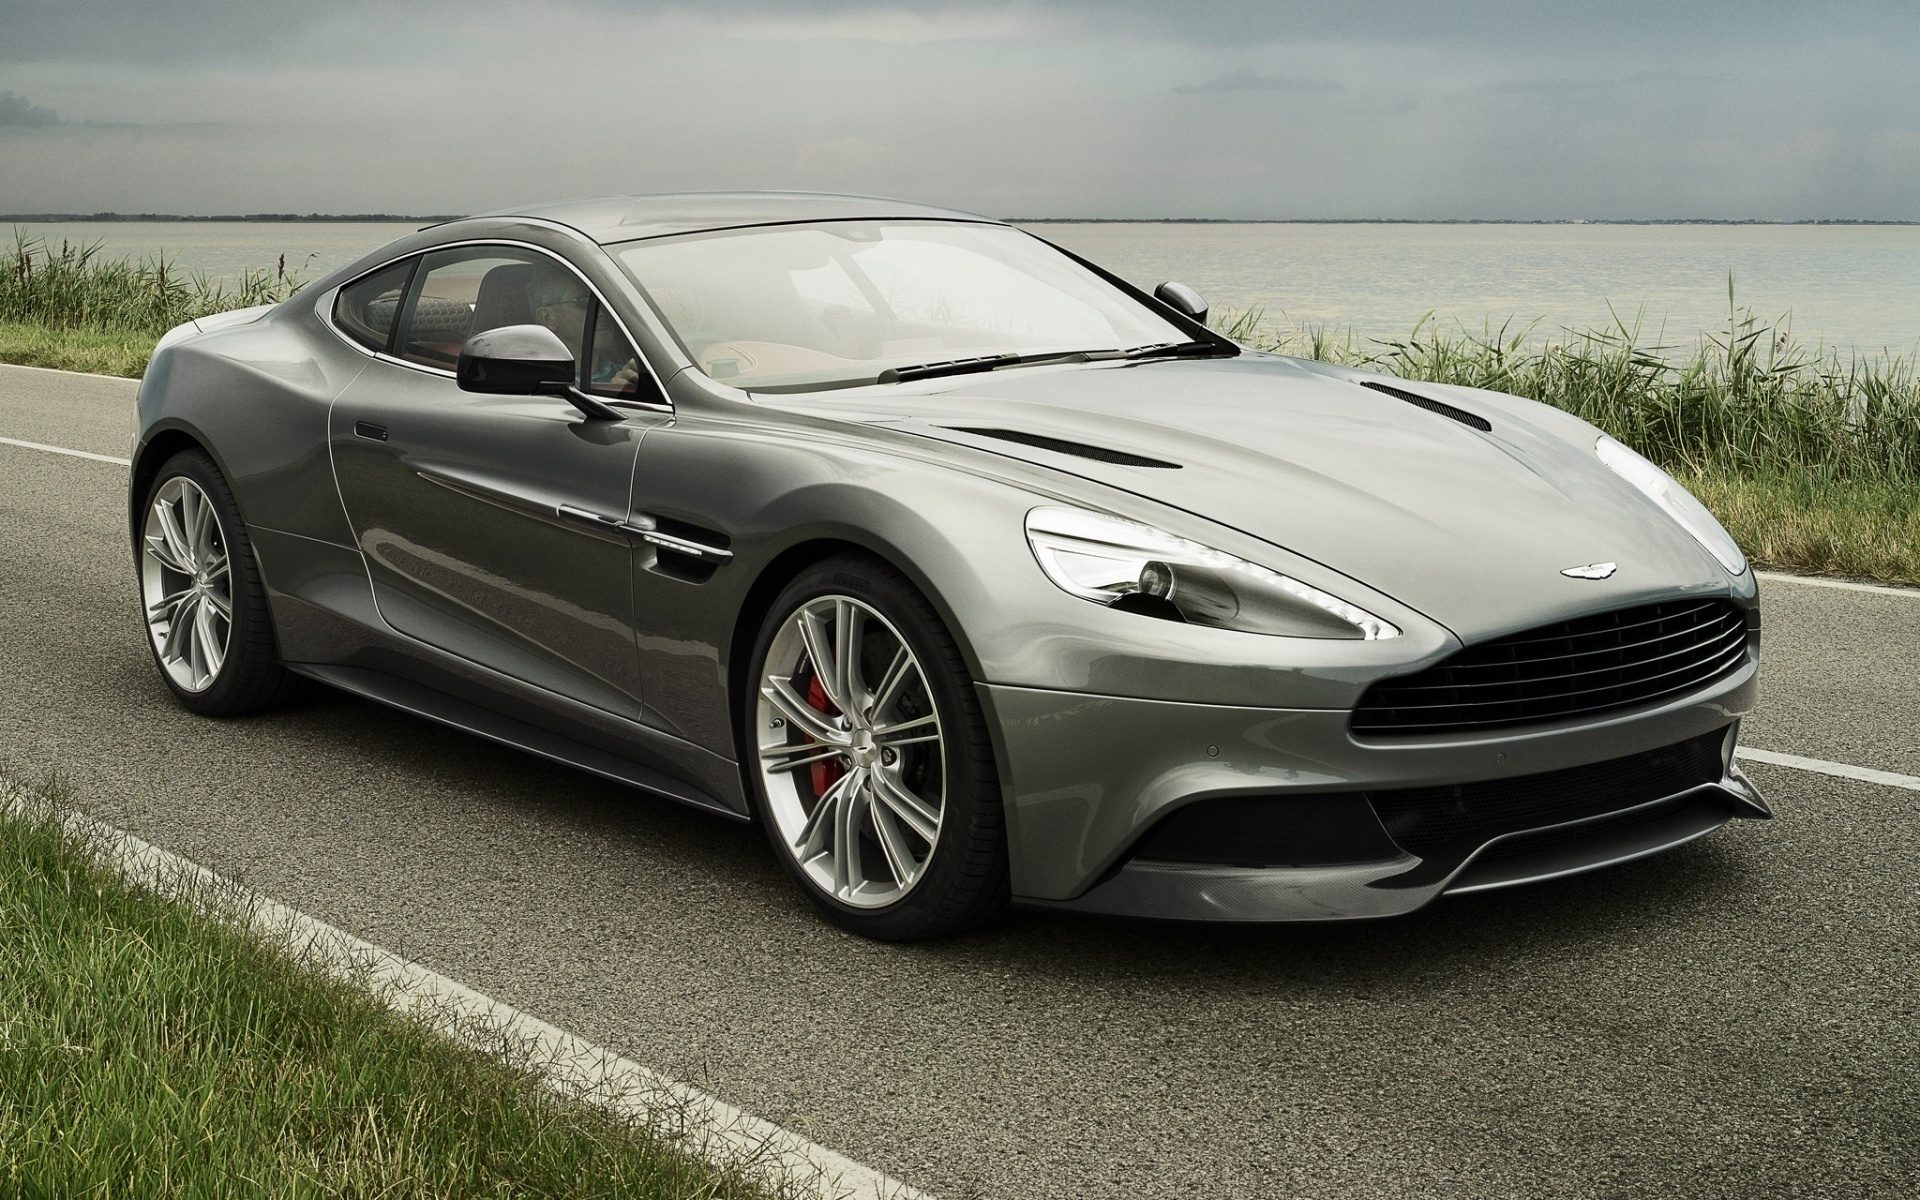 Aston Martin Vanquish Full HD Wallpaper And Background Image